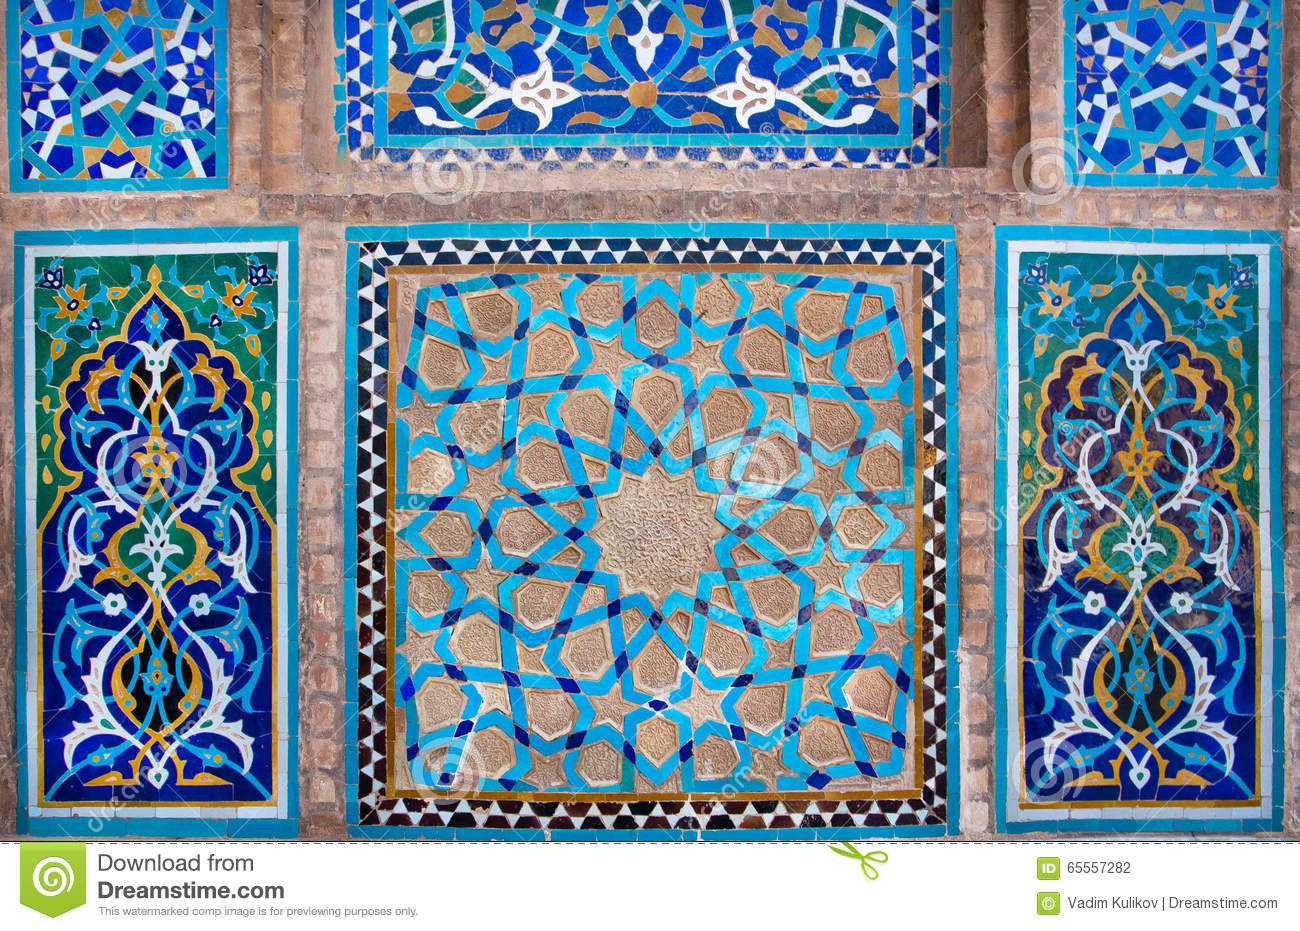 Design of antique ceramic tile inside the historic house in iran royalty free stock photo doublecrazyfo Image collections